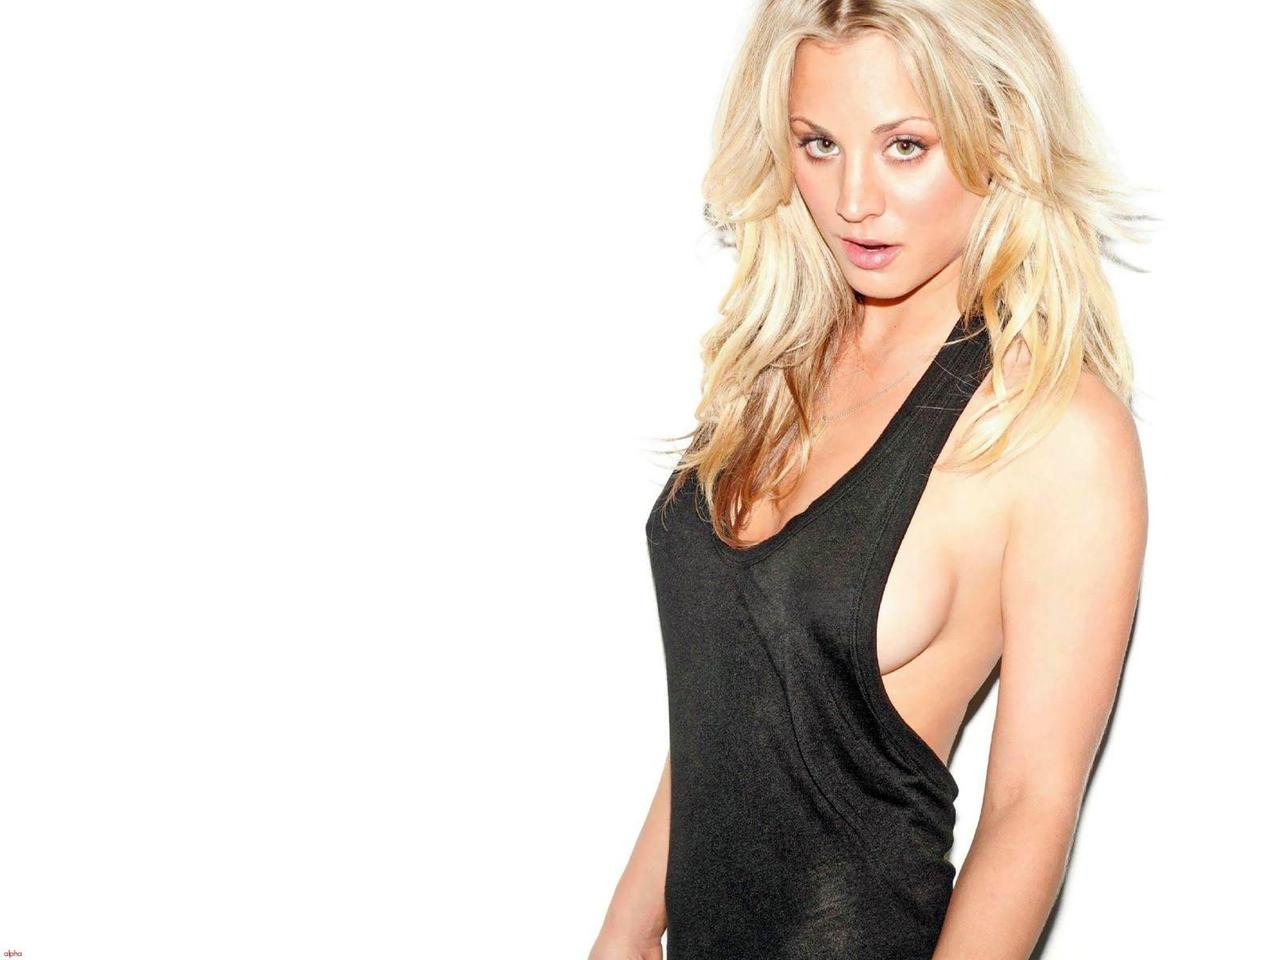 Pictures cuoco sexy kaley